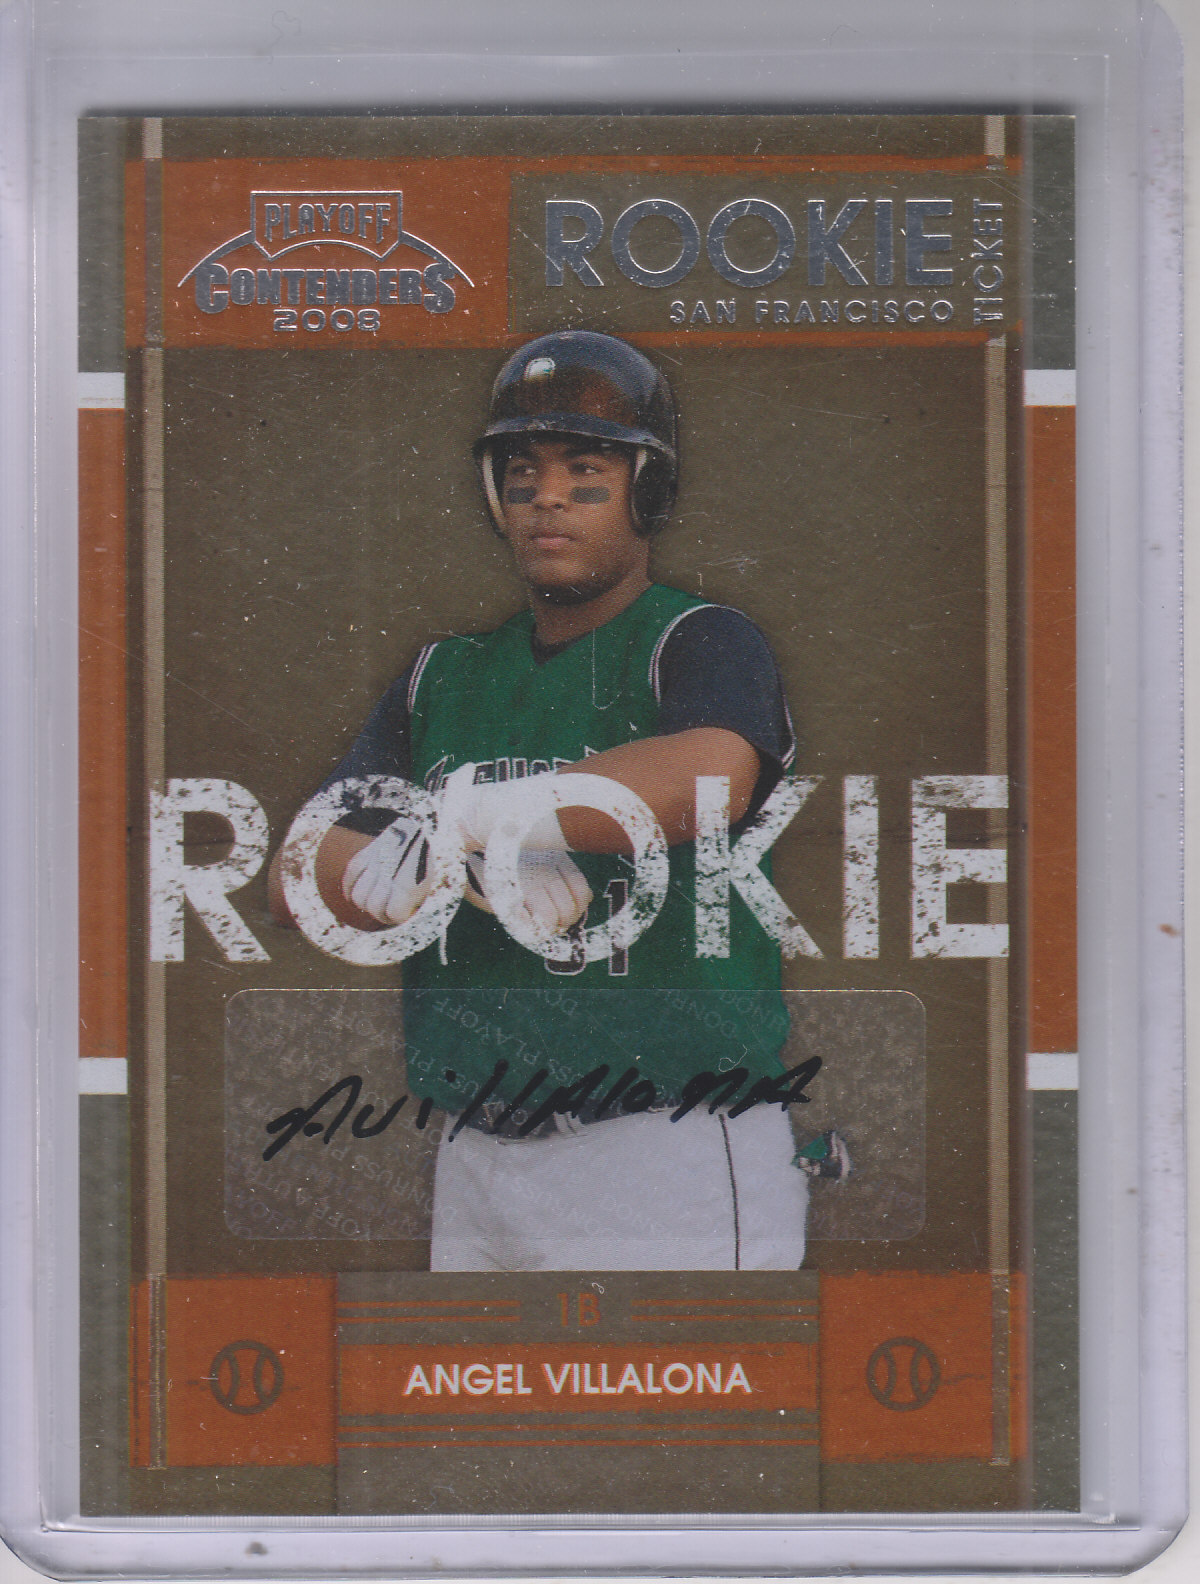 2008 Playoff Contenders #57 Angel Villalona AU